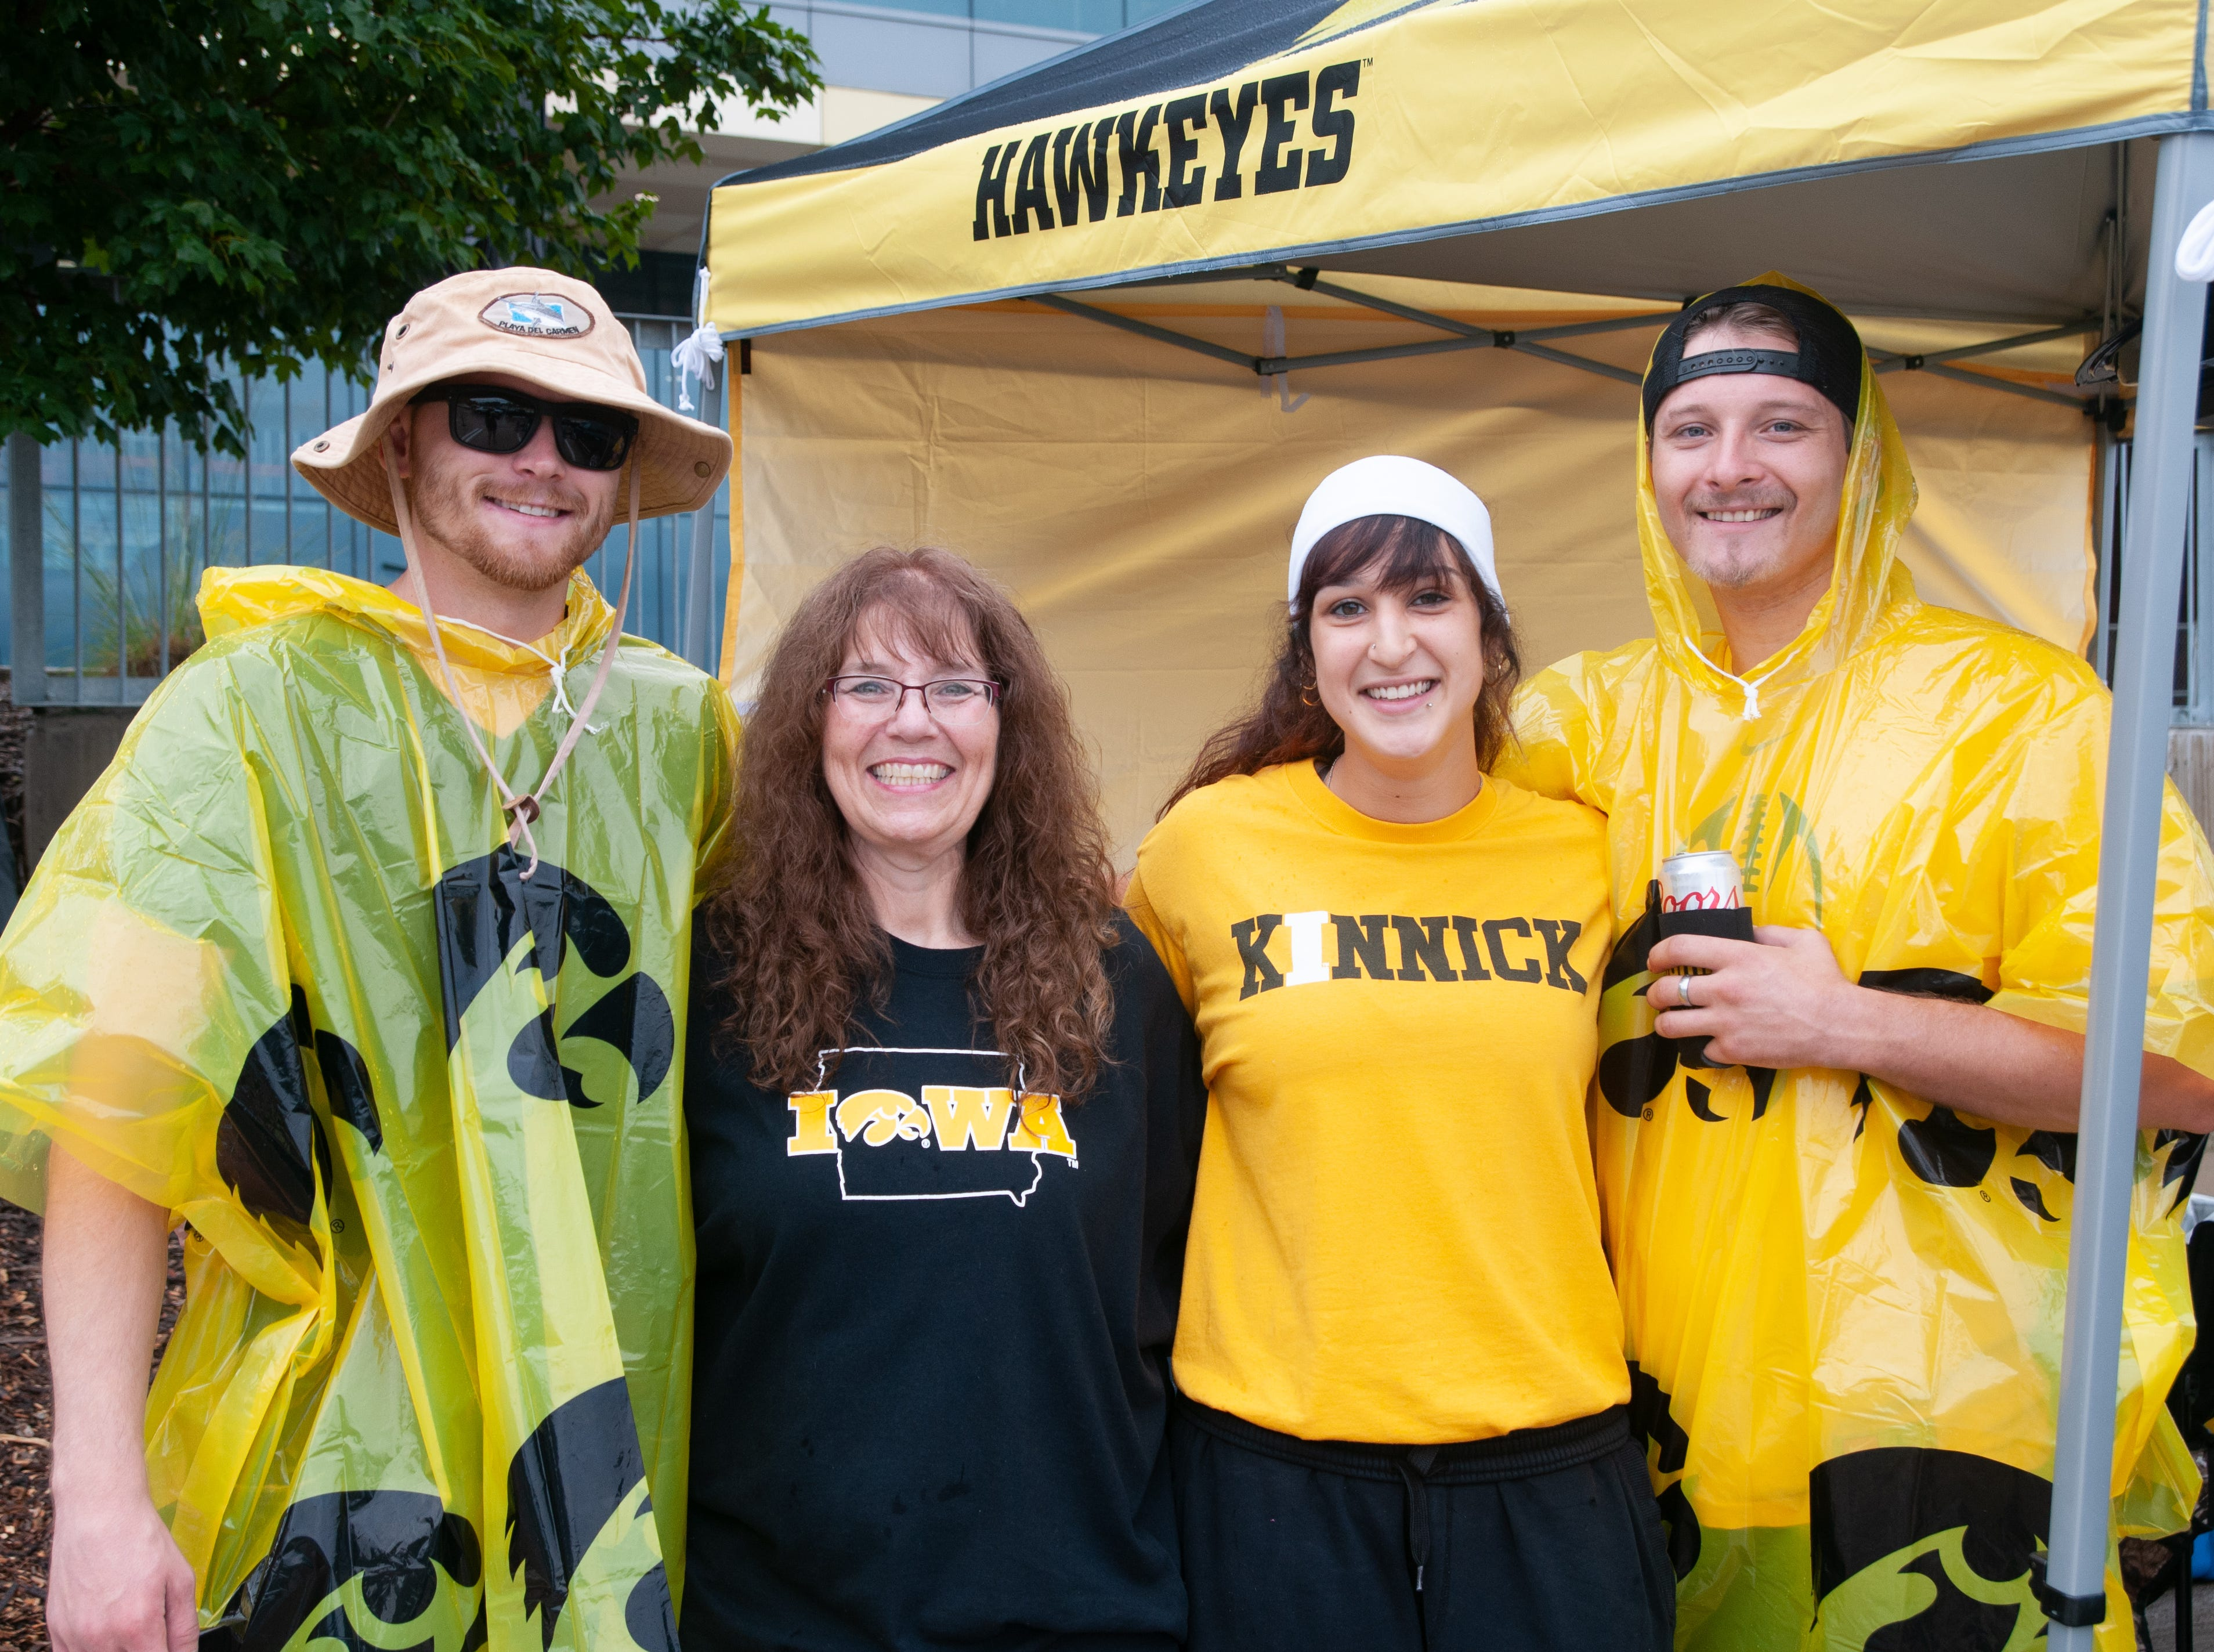 Tyler Pirri, 25, (left), Eddeana Hardy, 52, Cheyanne Schalk, 20, and Spencer Hardy, 25, of Mint Rose, Saturday, Sept. 1, 2018, while tailgating before the Iowa game against Northern Illinois in Iowa City.